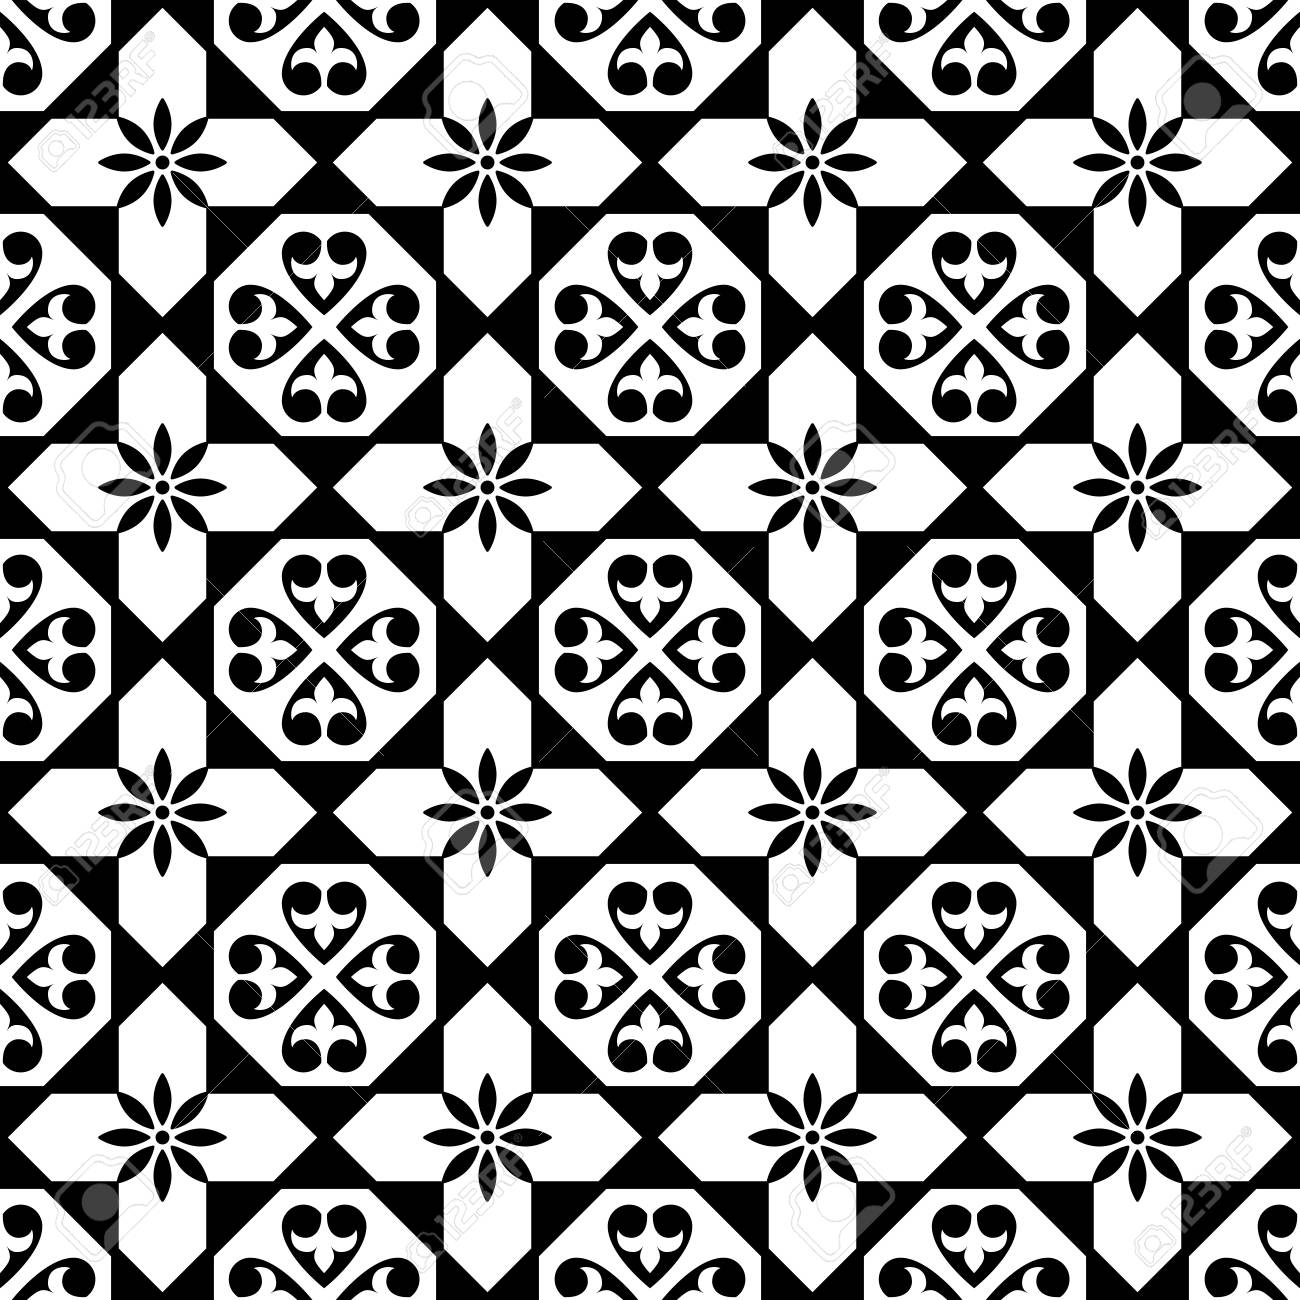 spanish tiles pattern moroccan and portuguese tile seamless